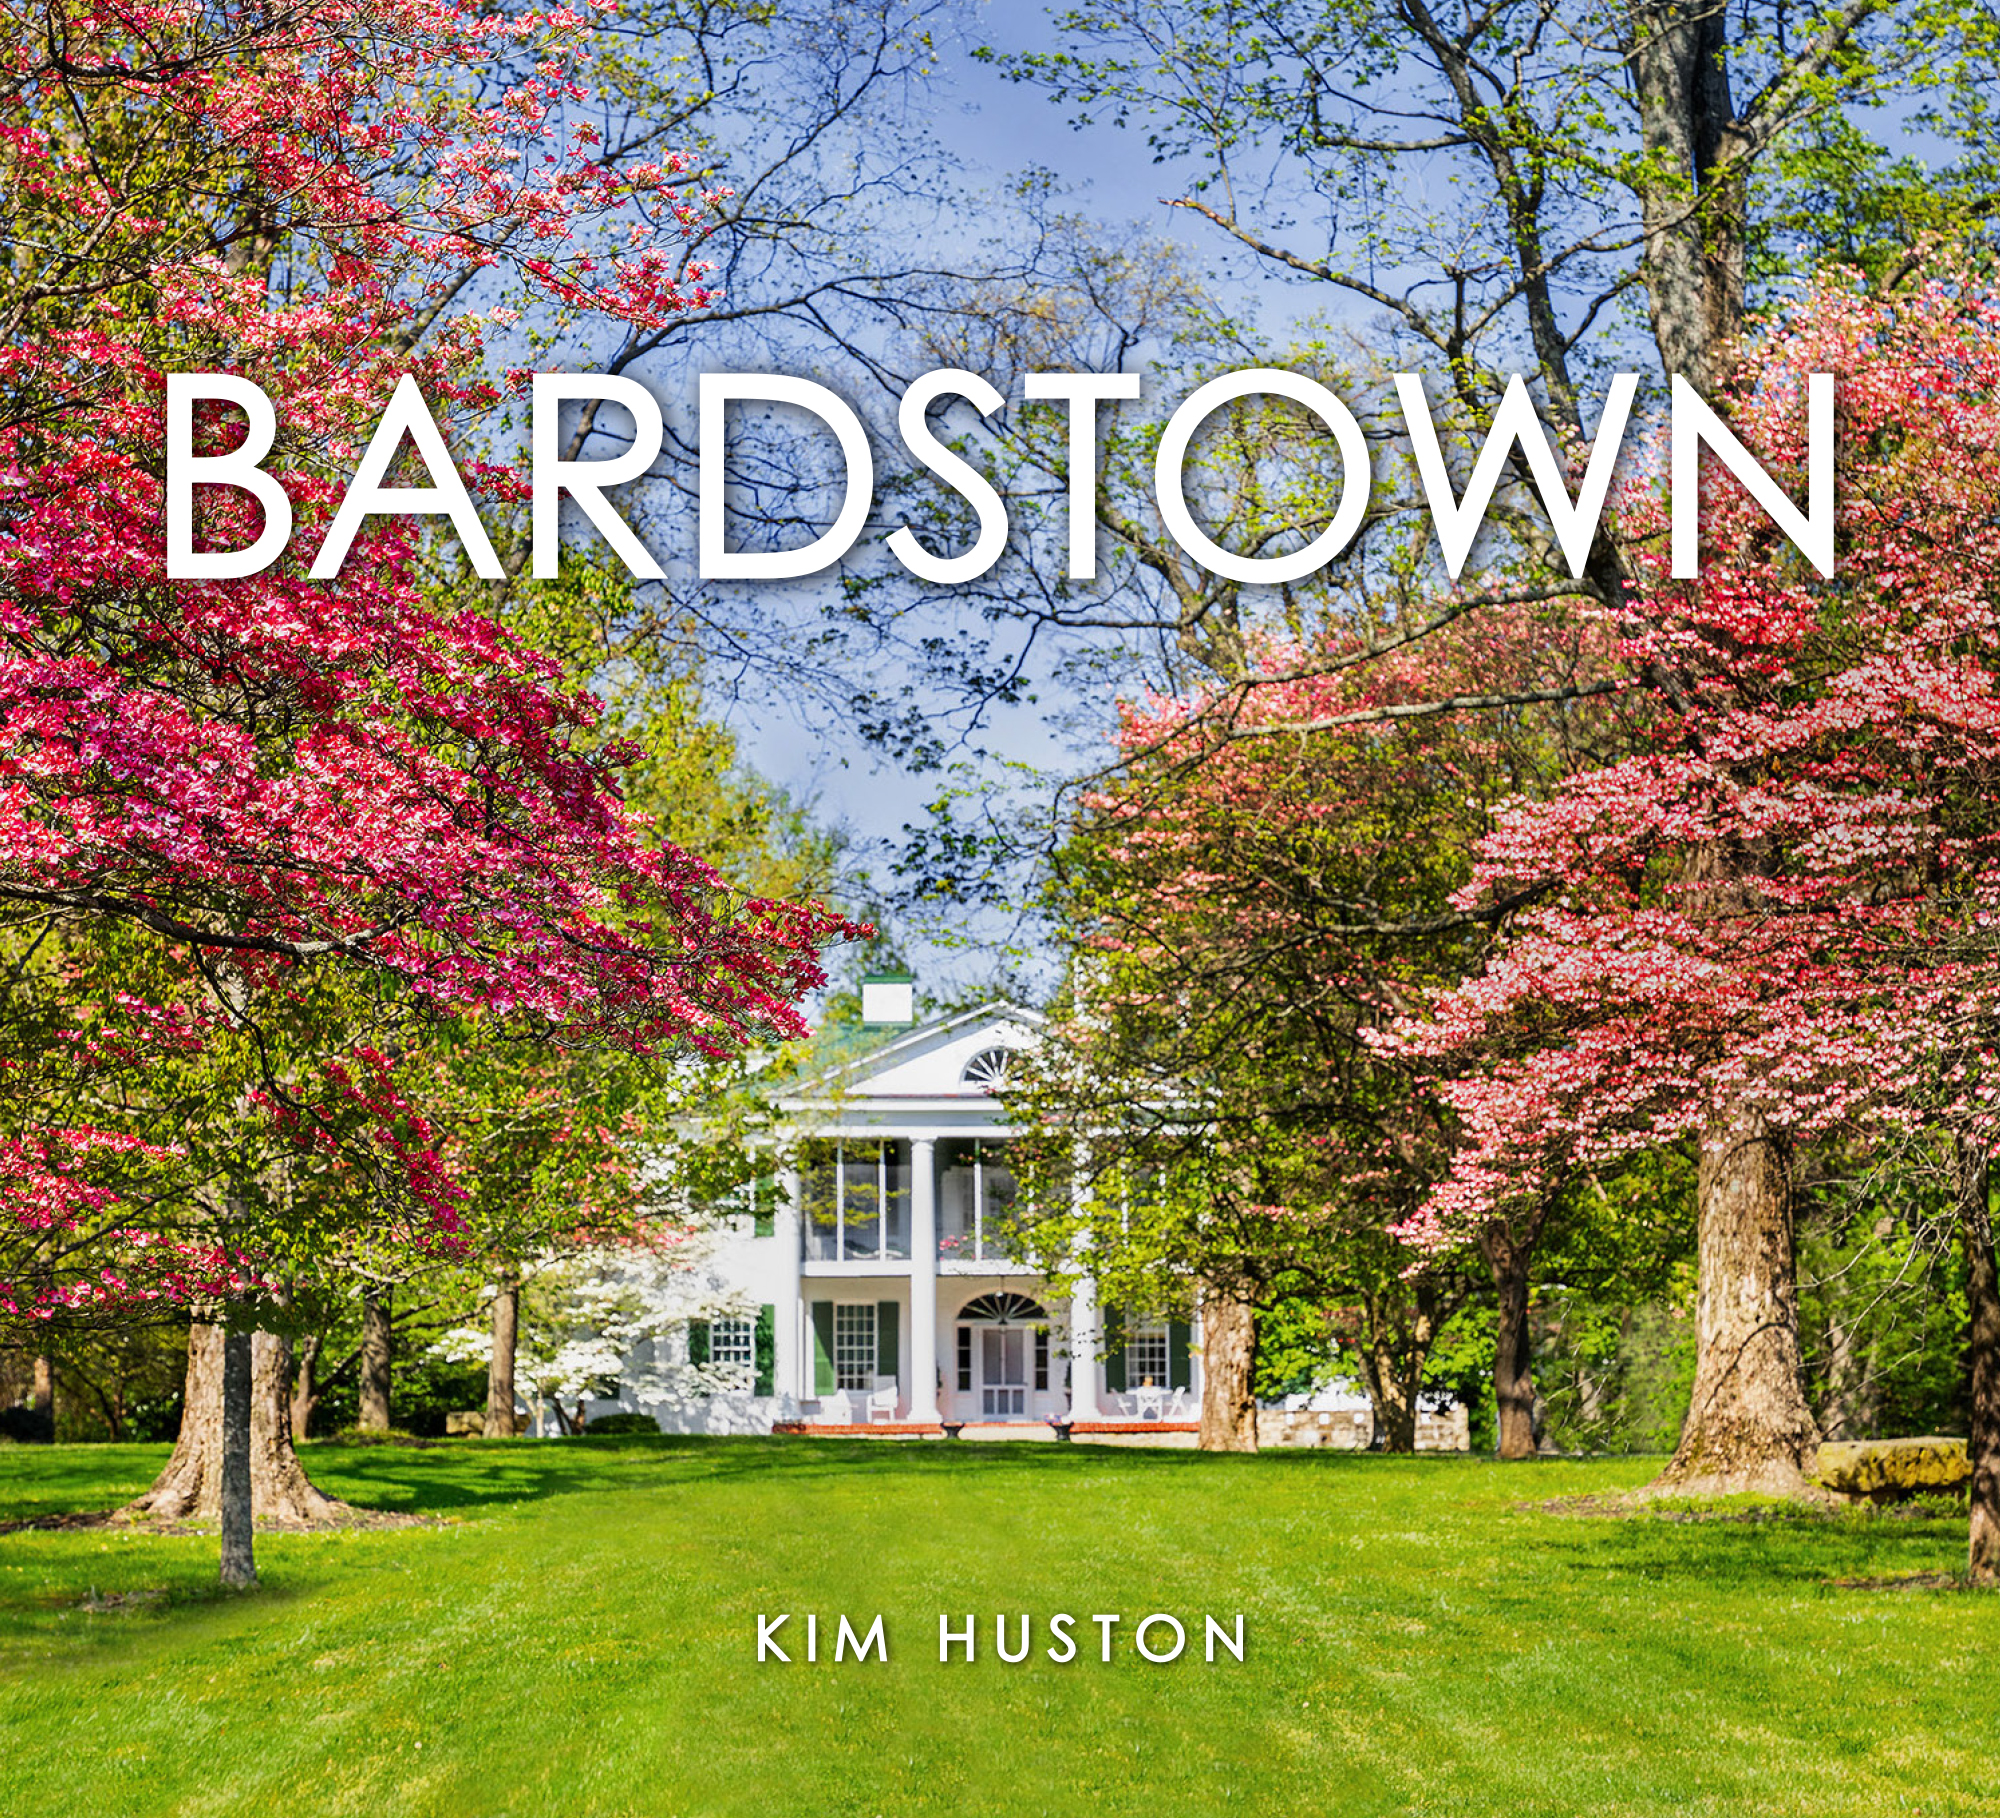 BARDSTOWN, by Kim Huston